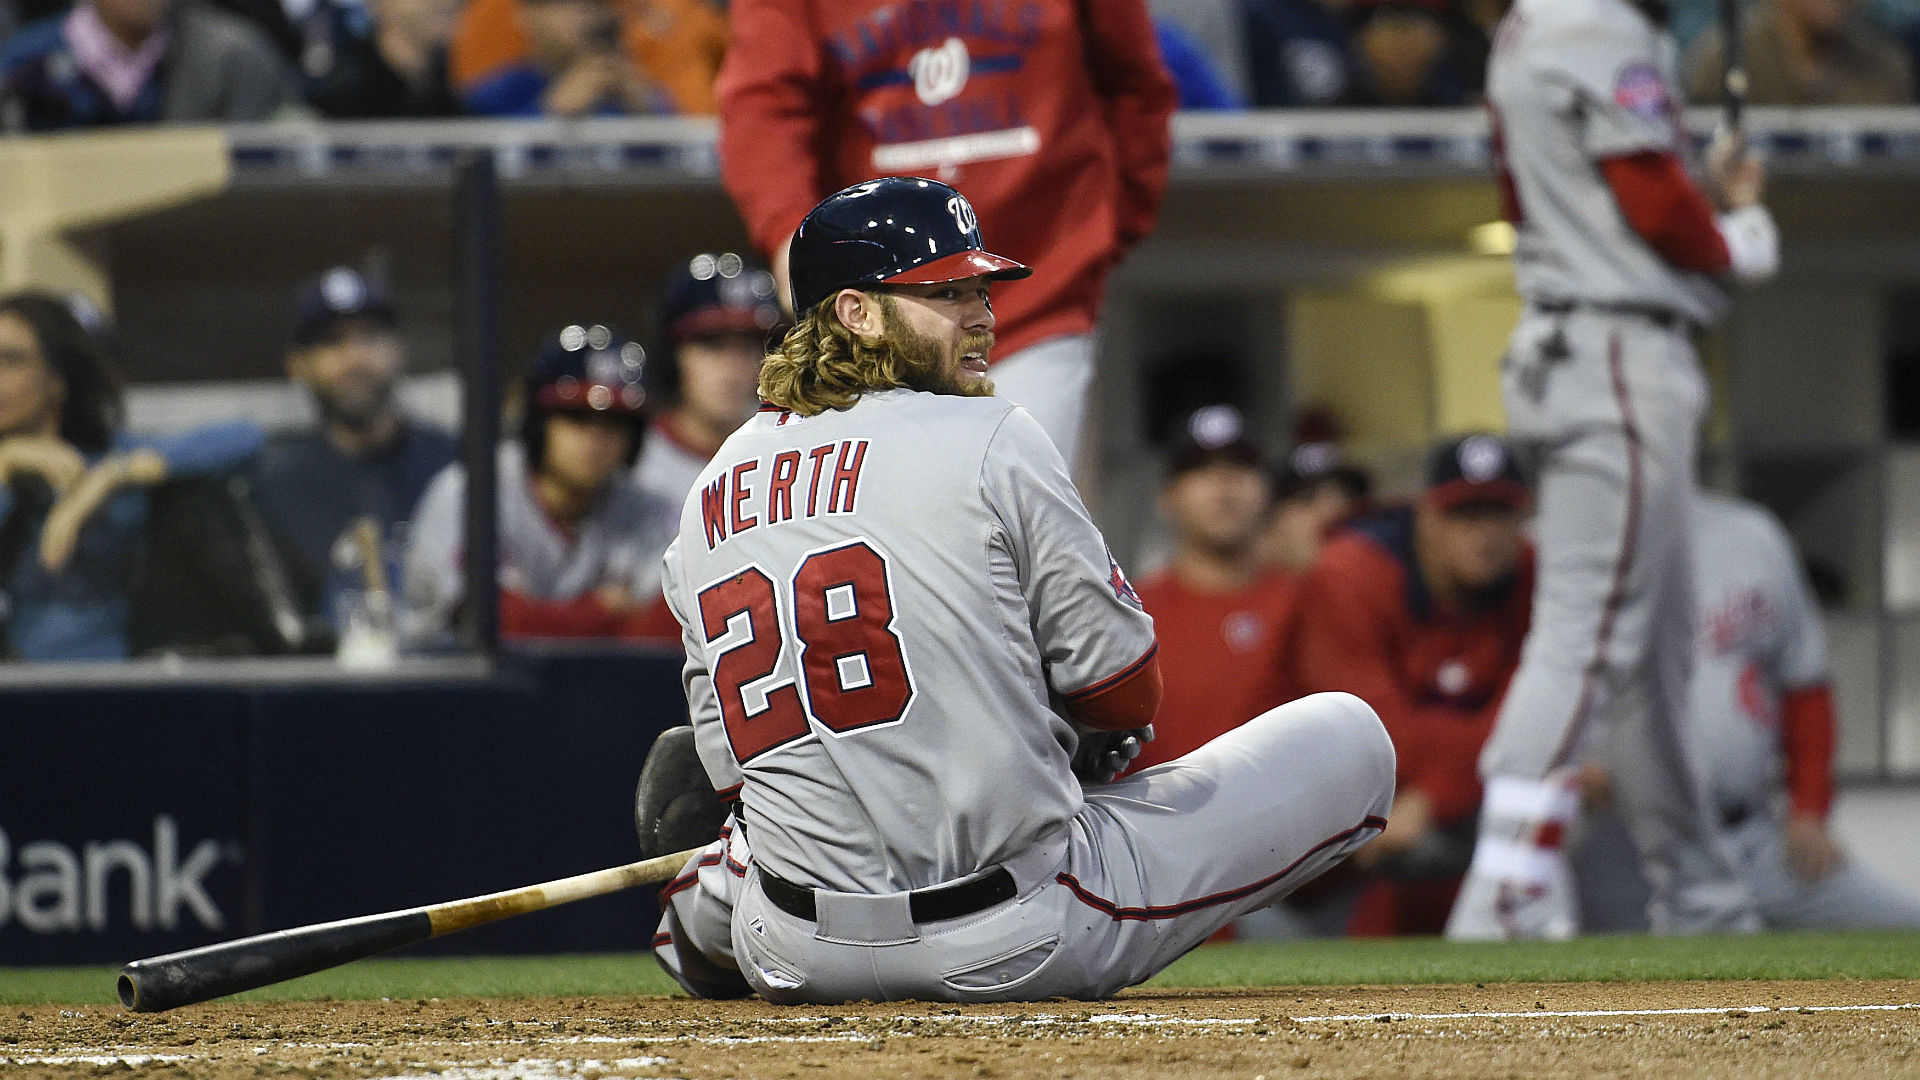 Jayson Werth reportedly has broken wrist, out until at least August